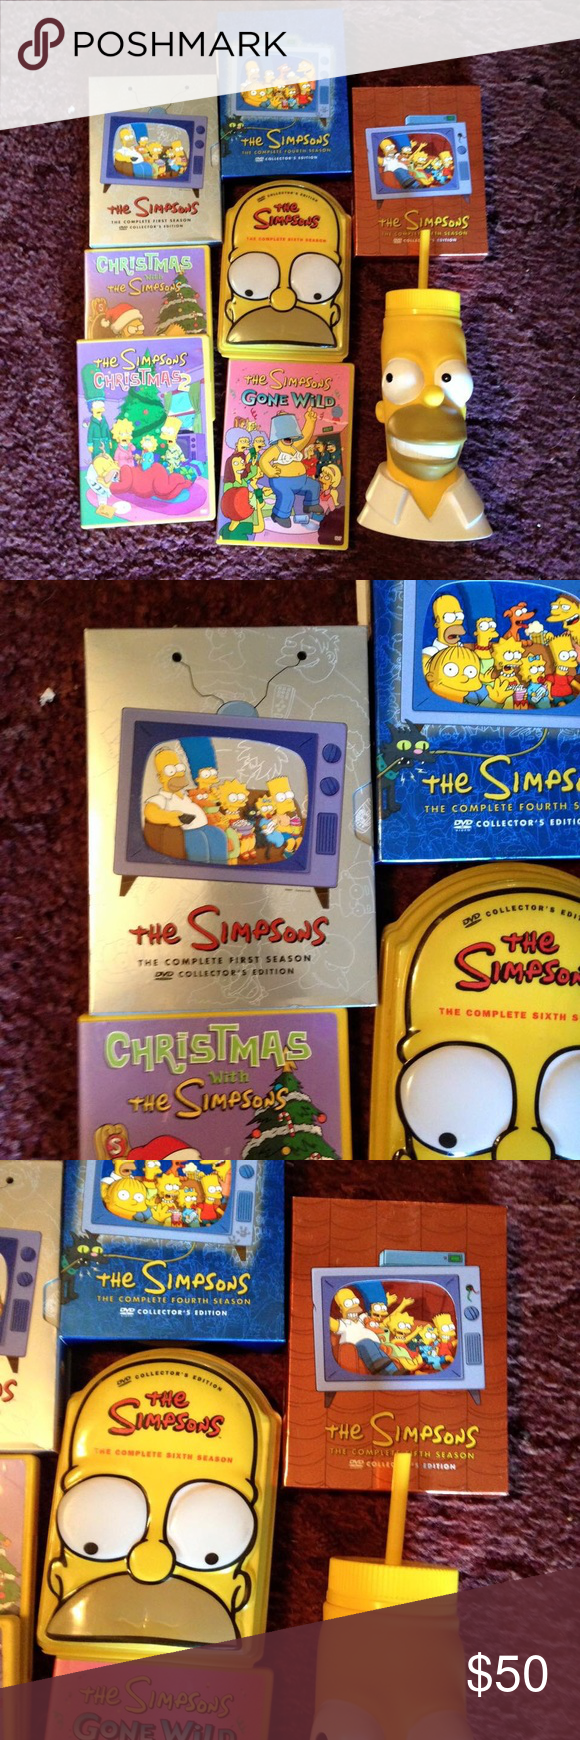 The Simpsons Christmas Dvd.Euc Simpsons Dvd Series Sets Bundle Complete 1st 4th 5th